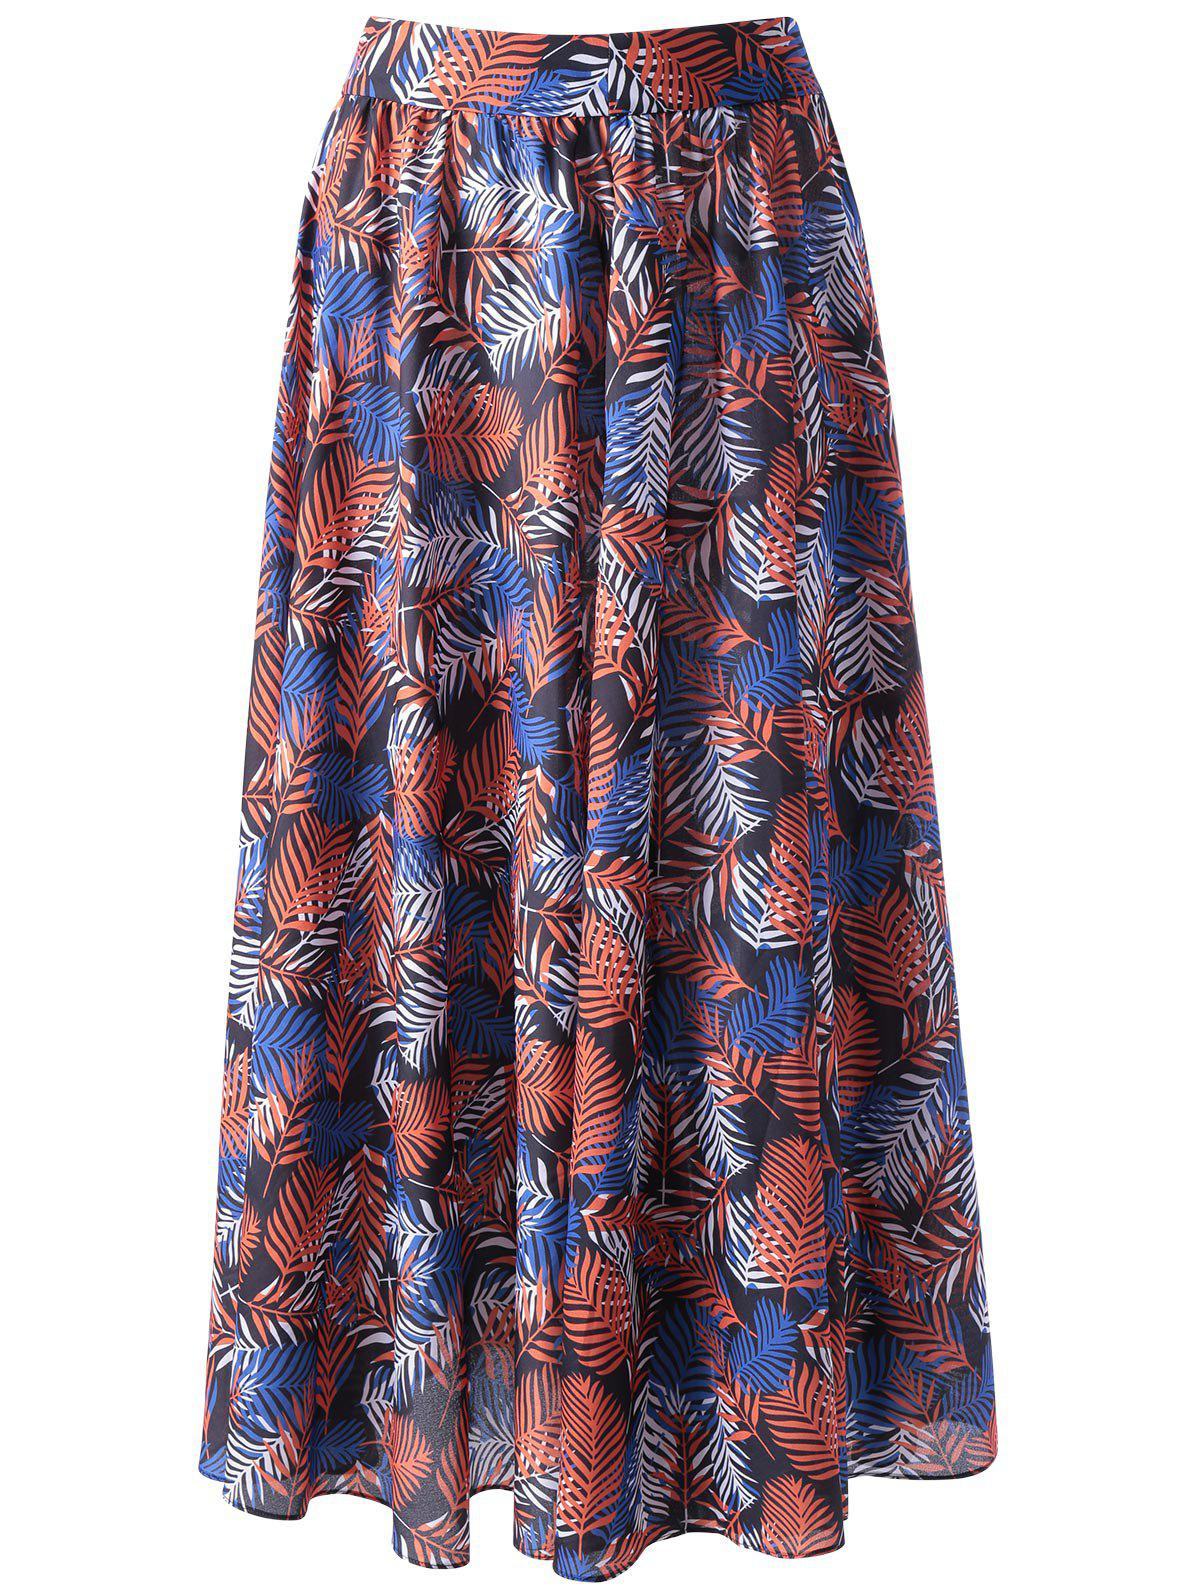 Trendy Ethnic Print Beach Skirt For Women